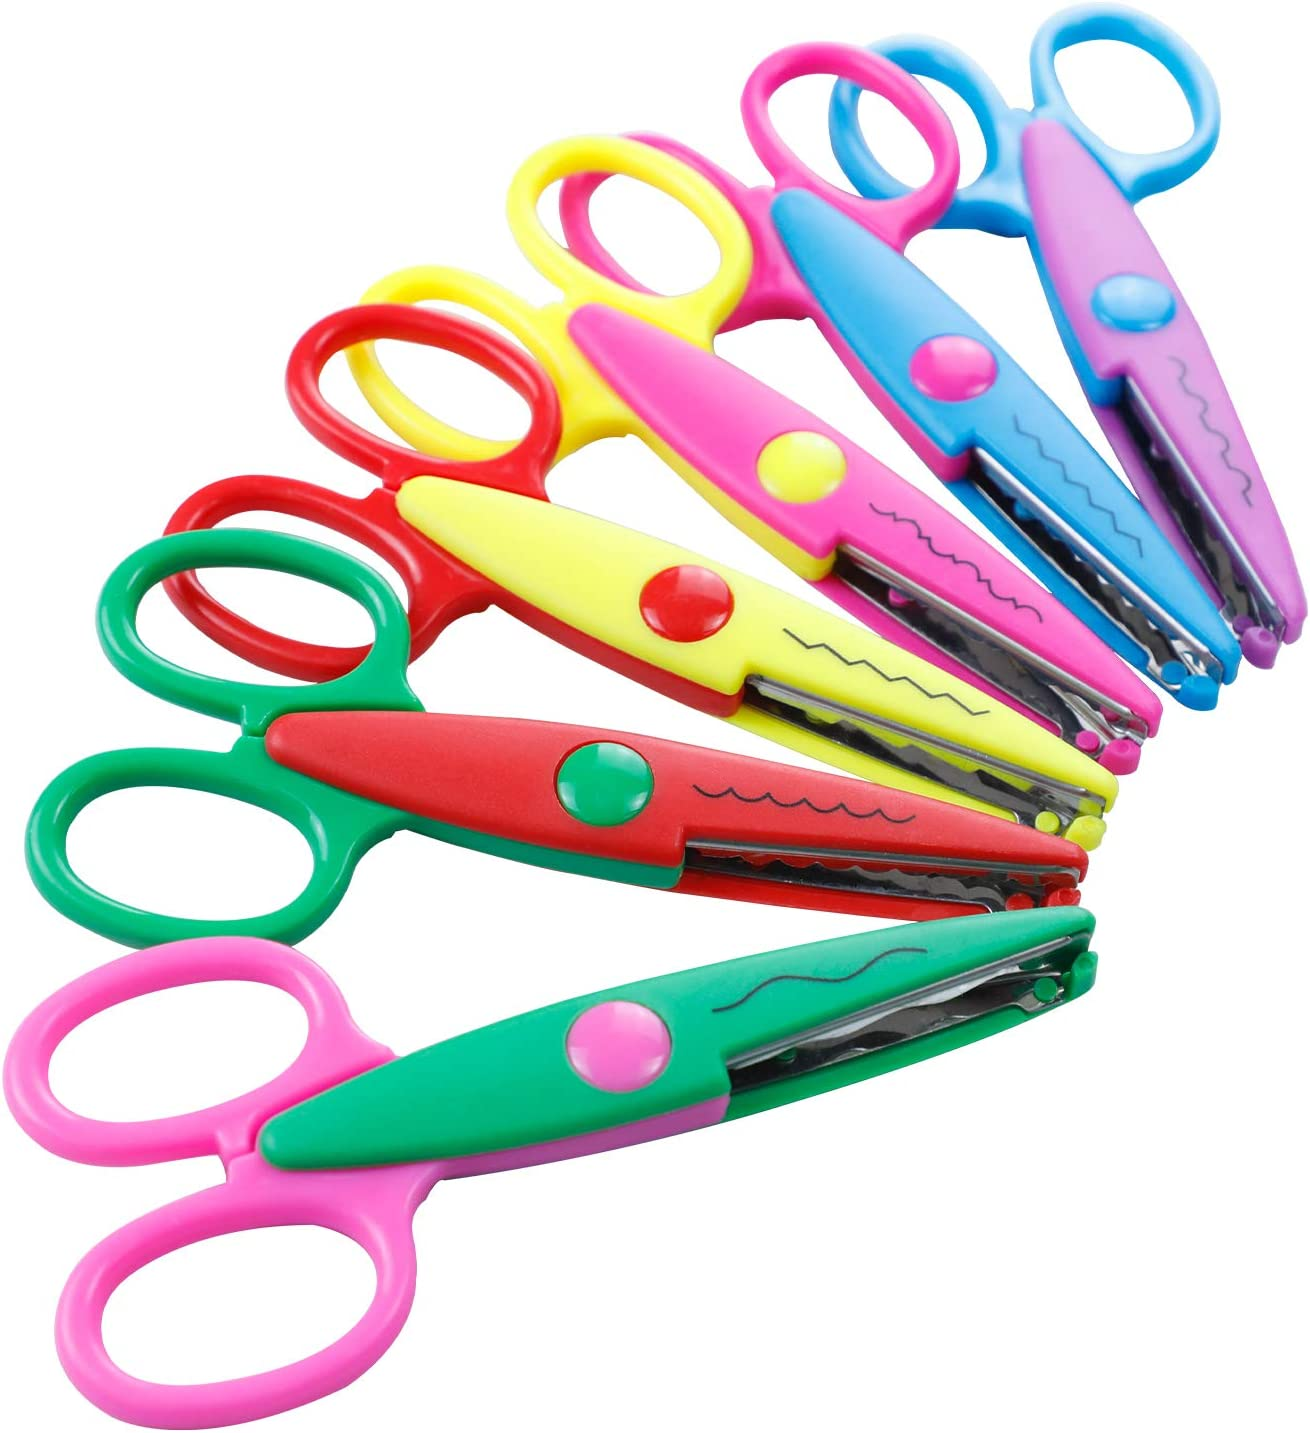 Amazon.com : Decorative Scissors Kids Craft Scissors Colorful